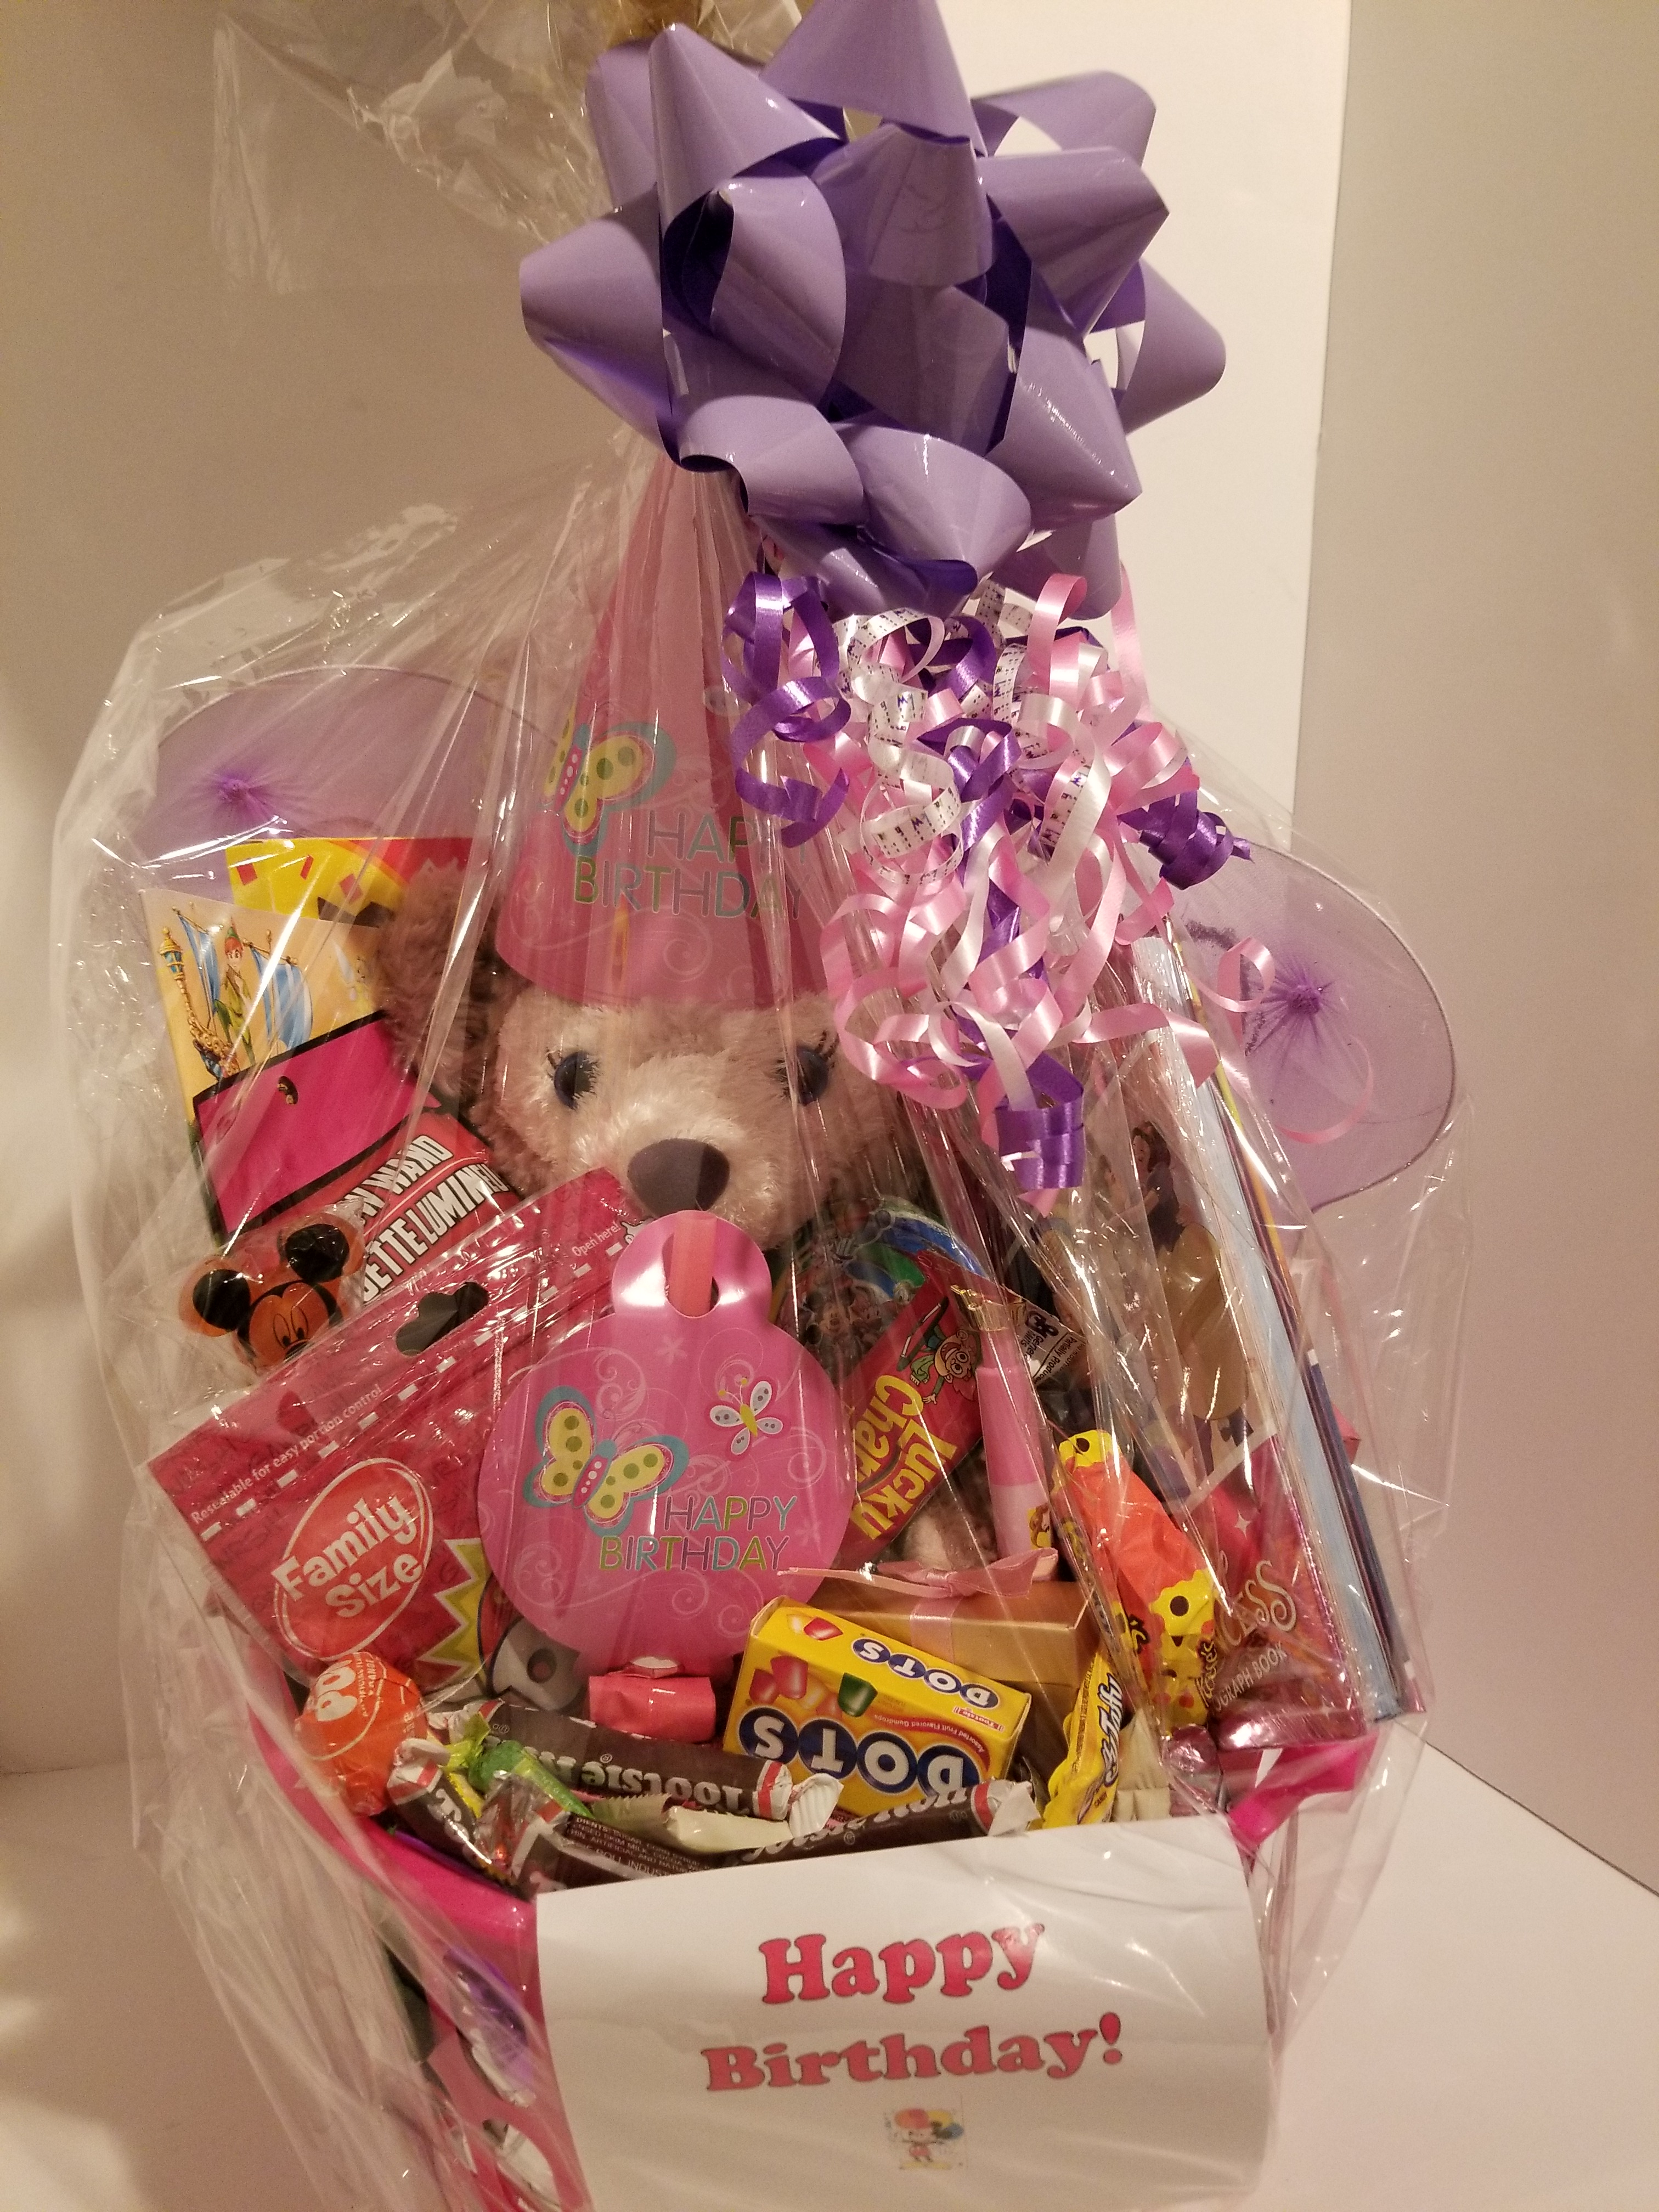 Another fun gift basket delivered last week!